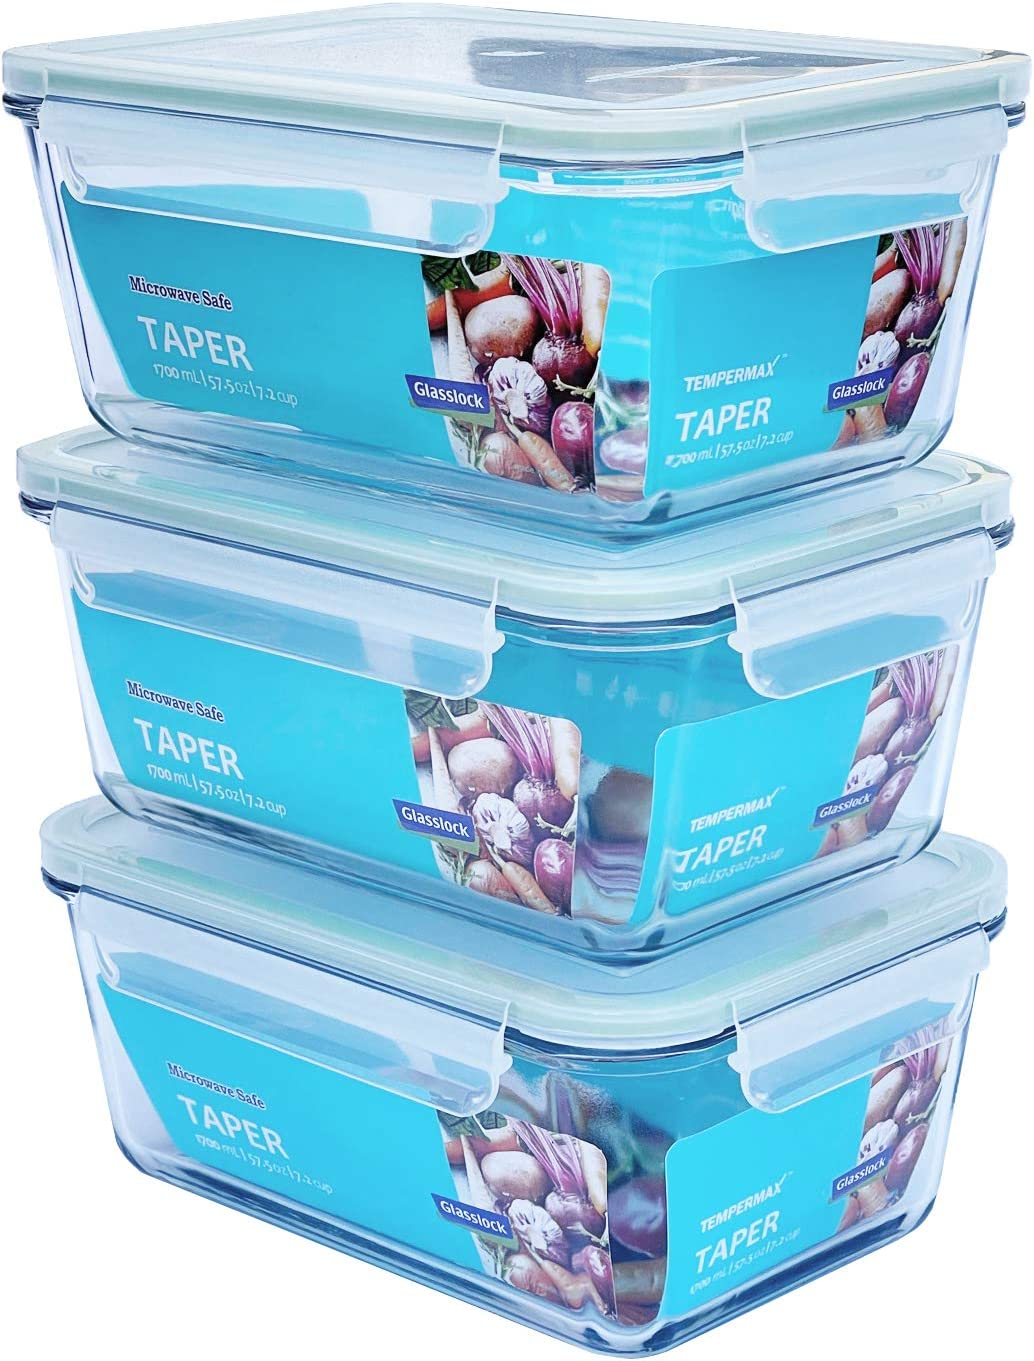 Glasslock Taper Rectangular Glass Food-Storage Container with Locking Lids Anti-Spill Microwave Safe 57.5 oz / 1700 ml 6pc Set